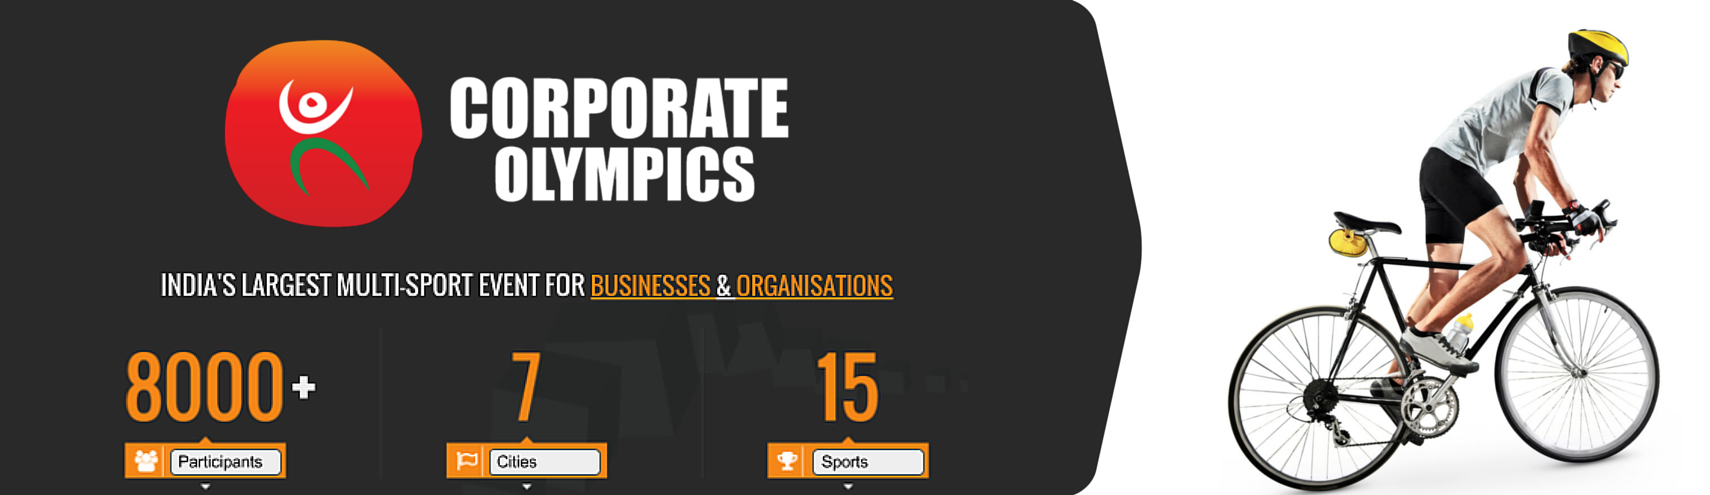 Corporate Olympics (Cycling)